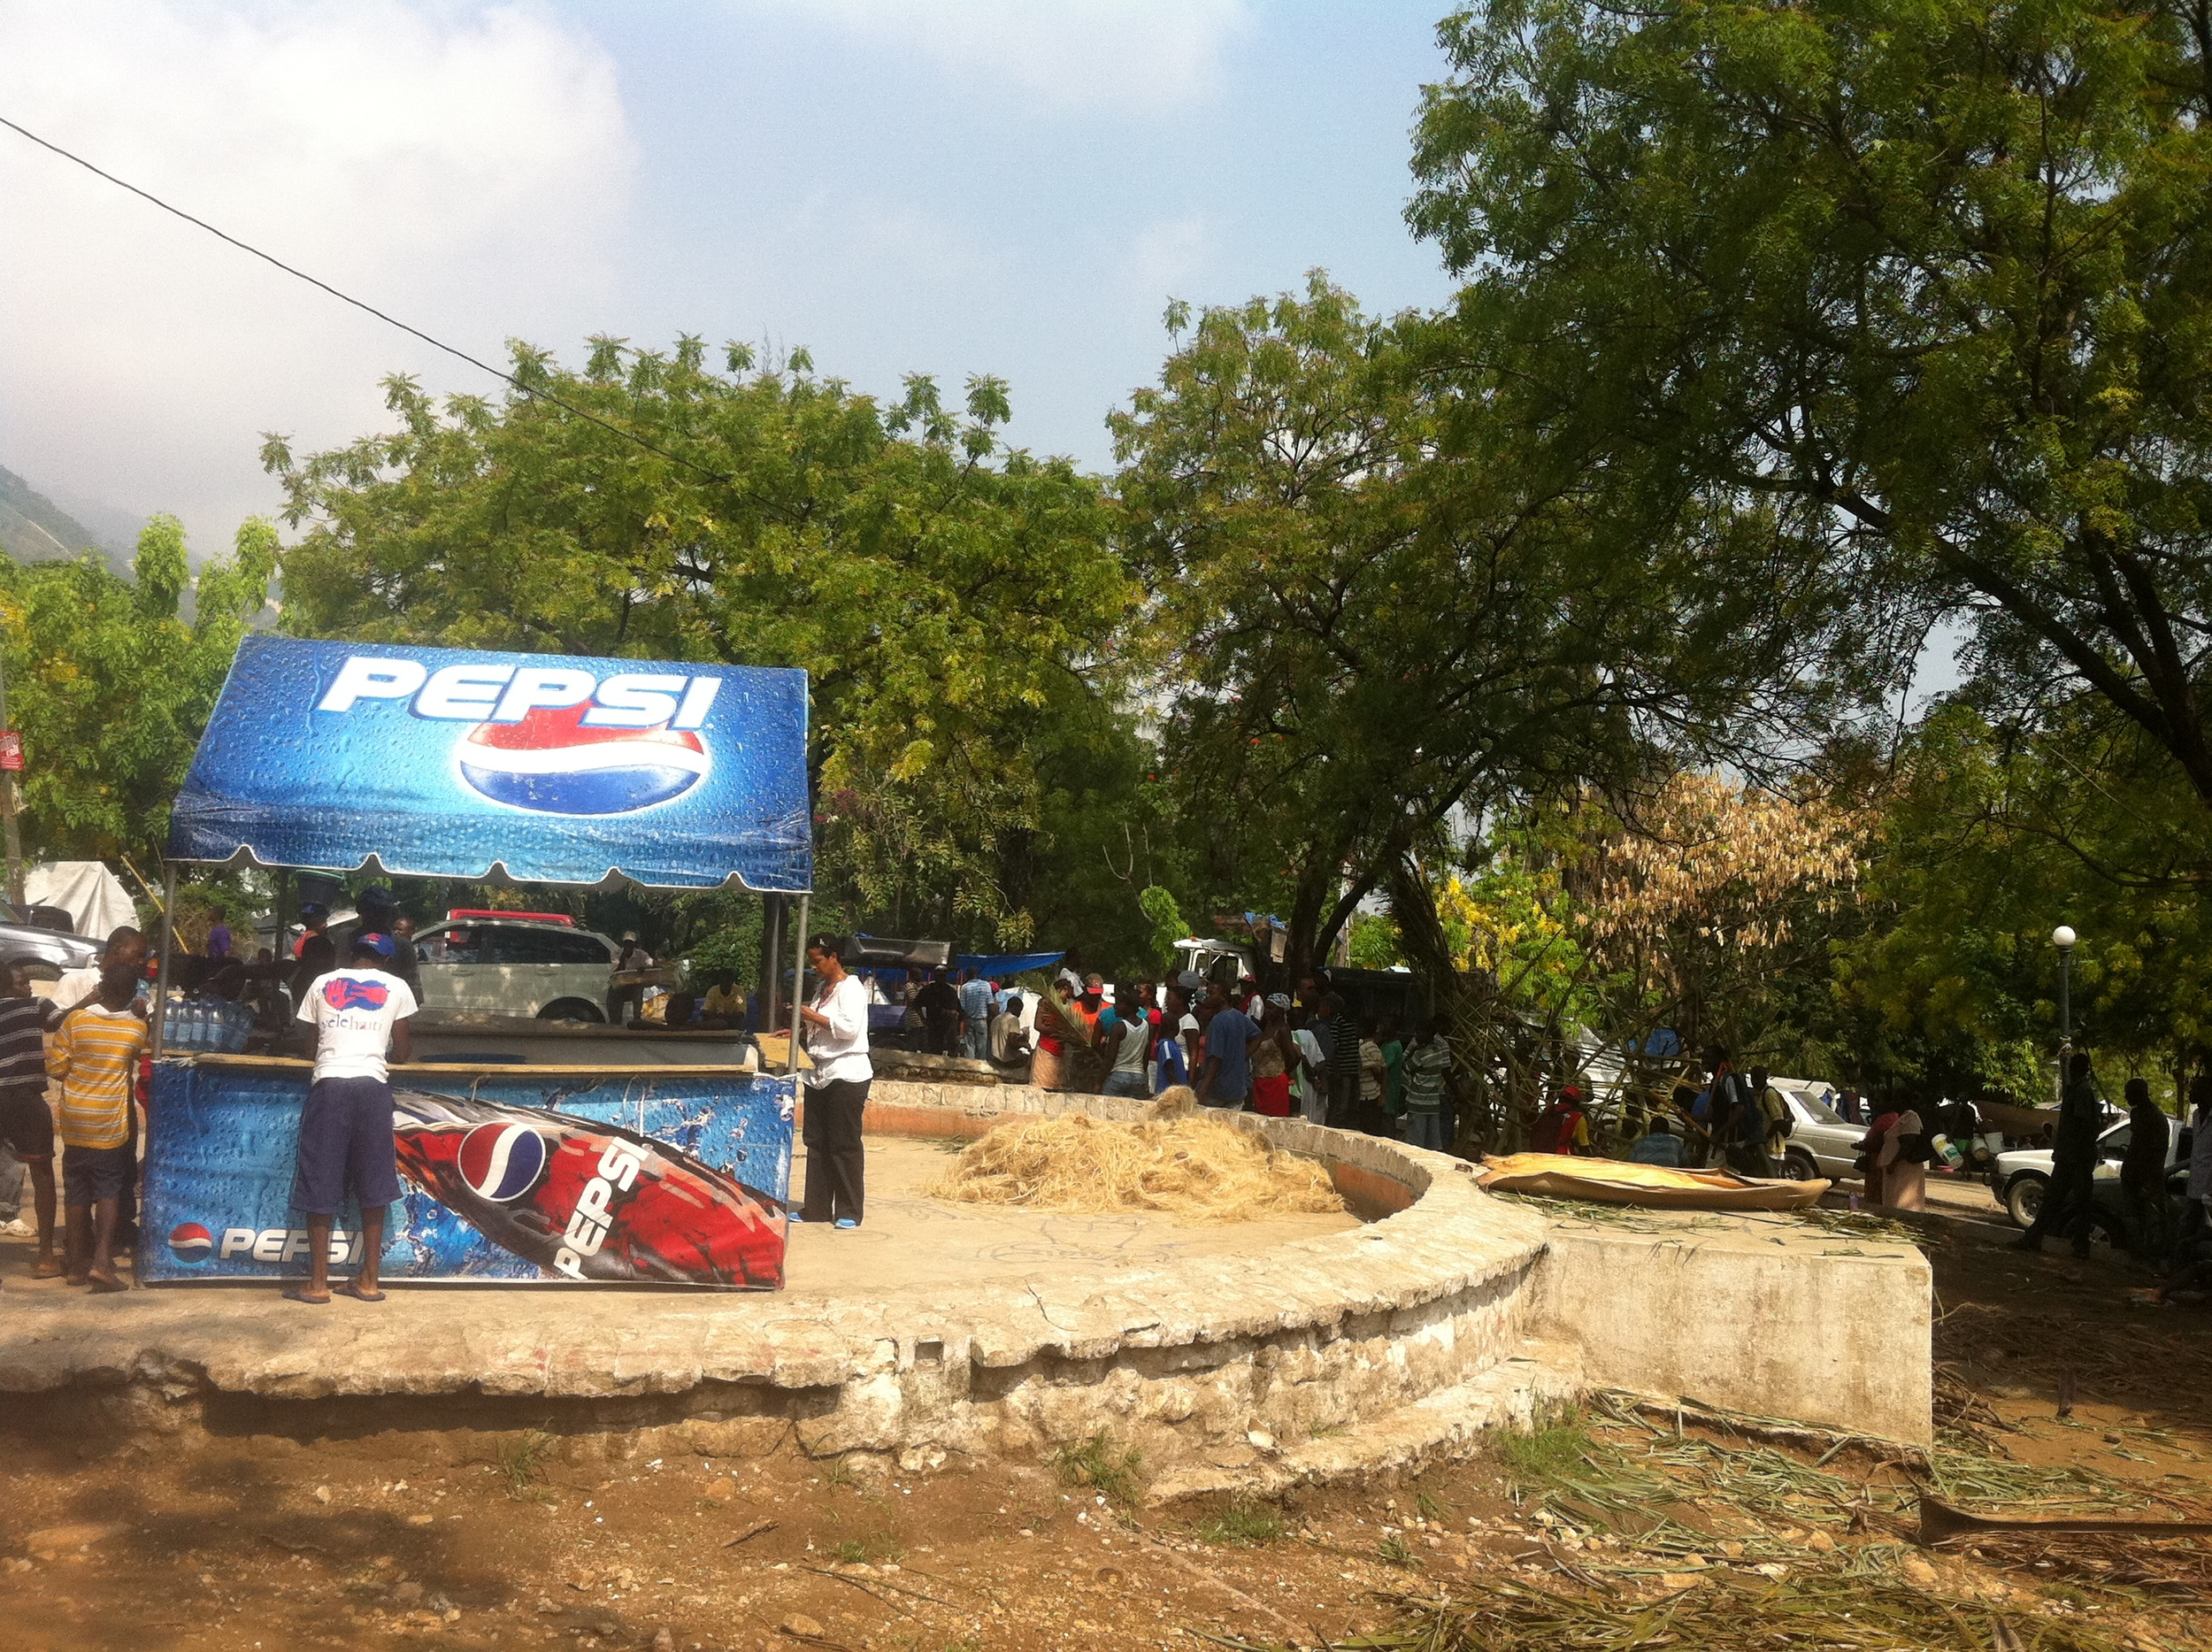 pepsi donated two weeks worth of water